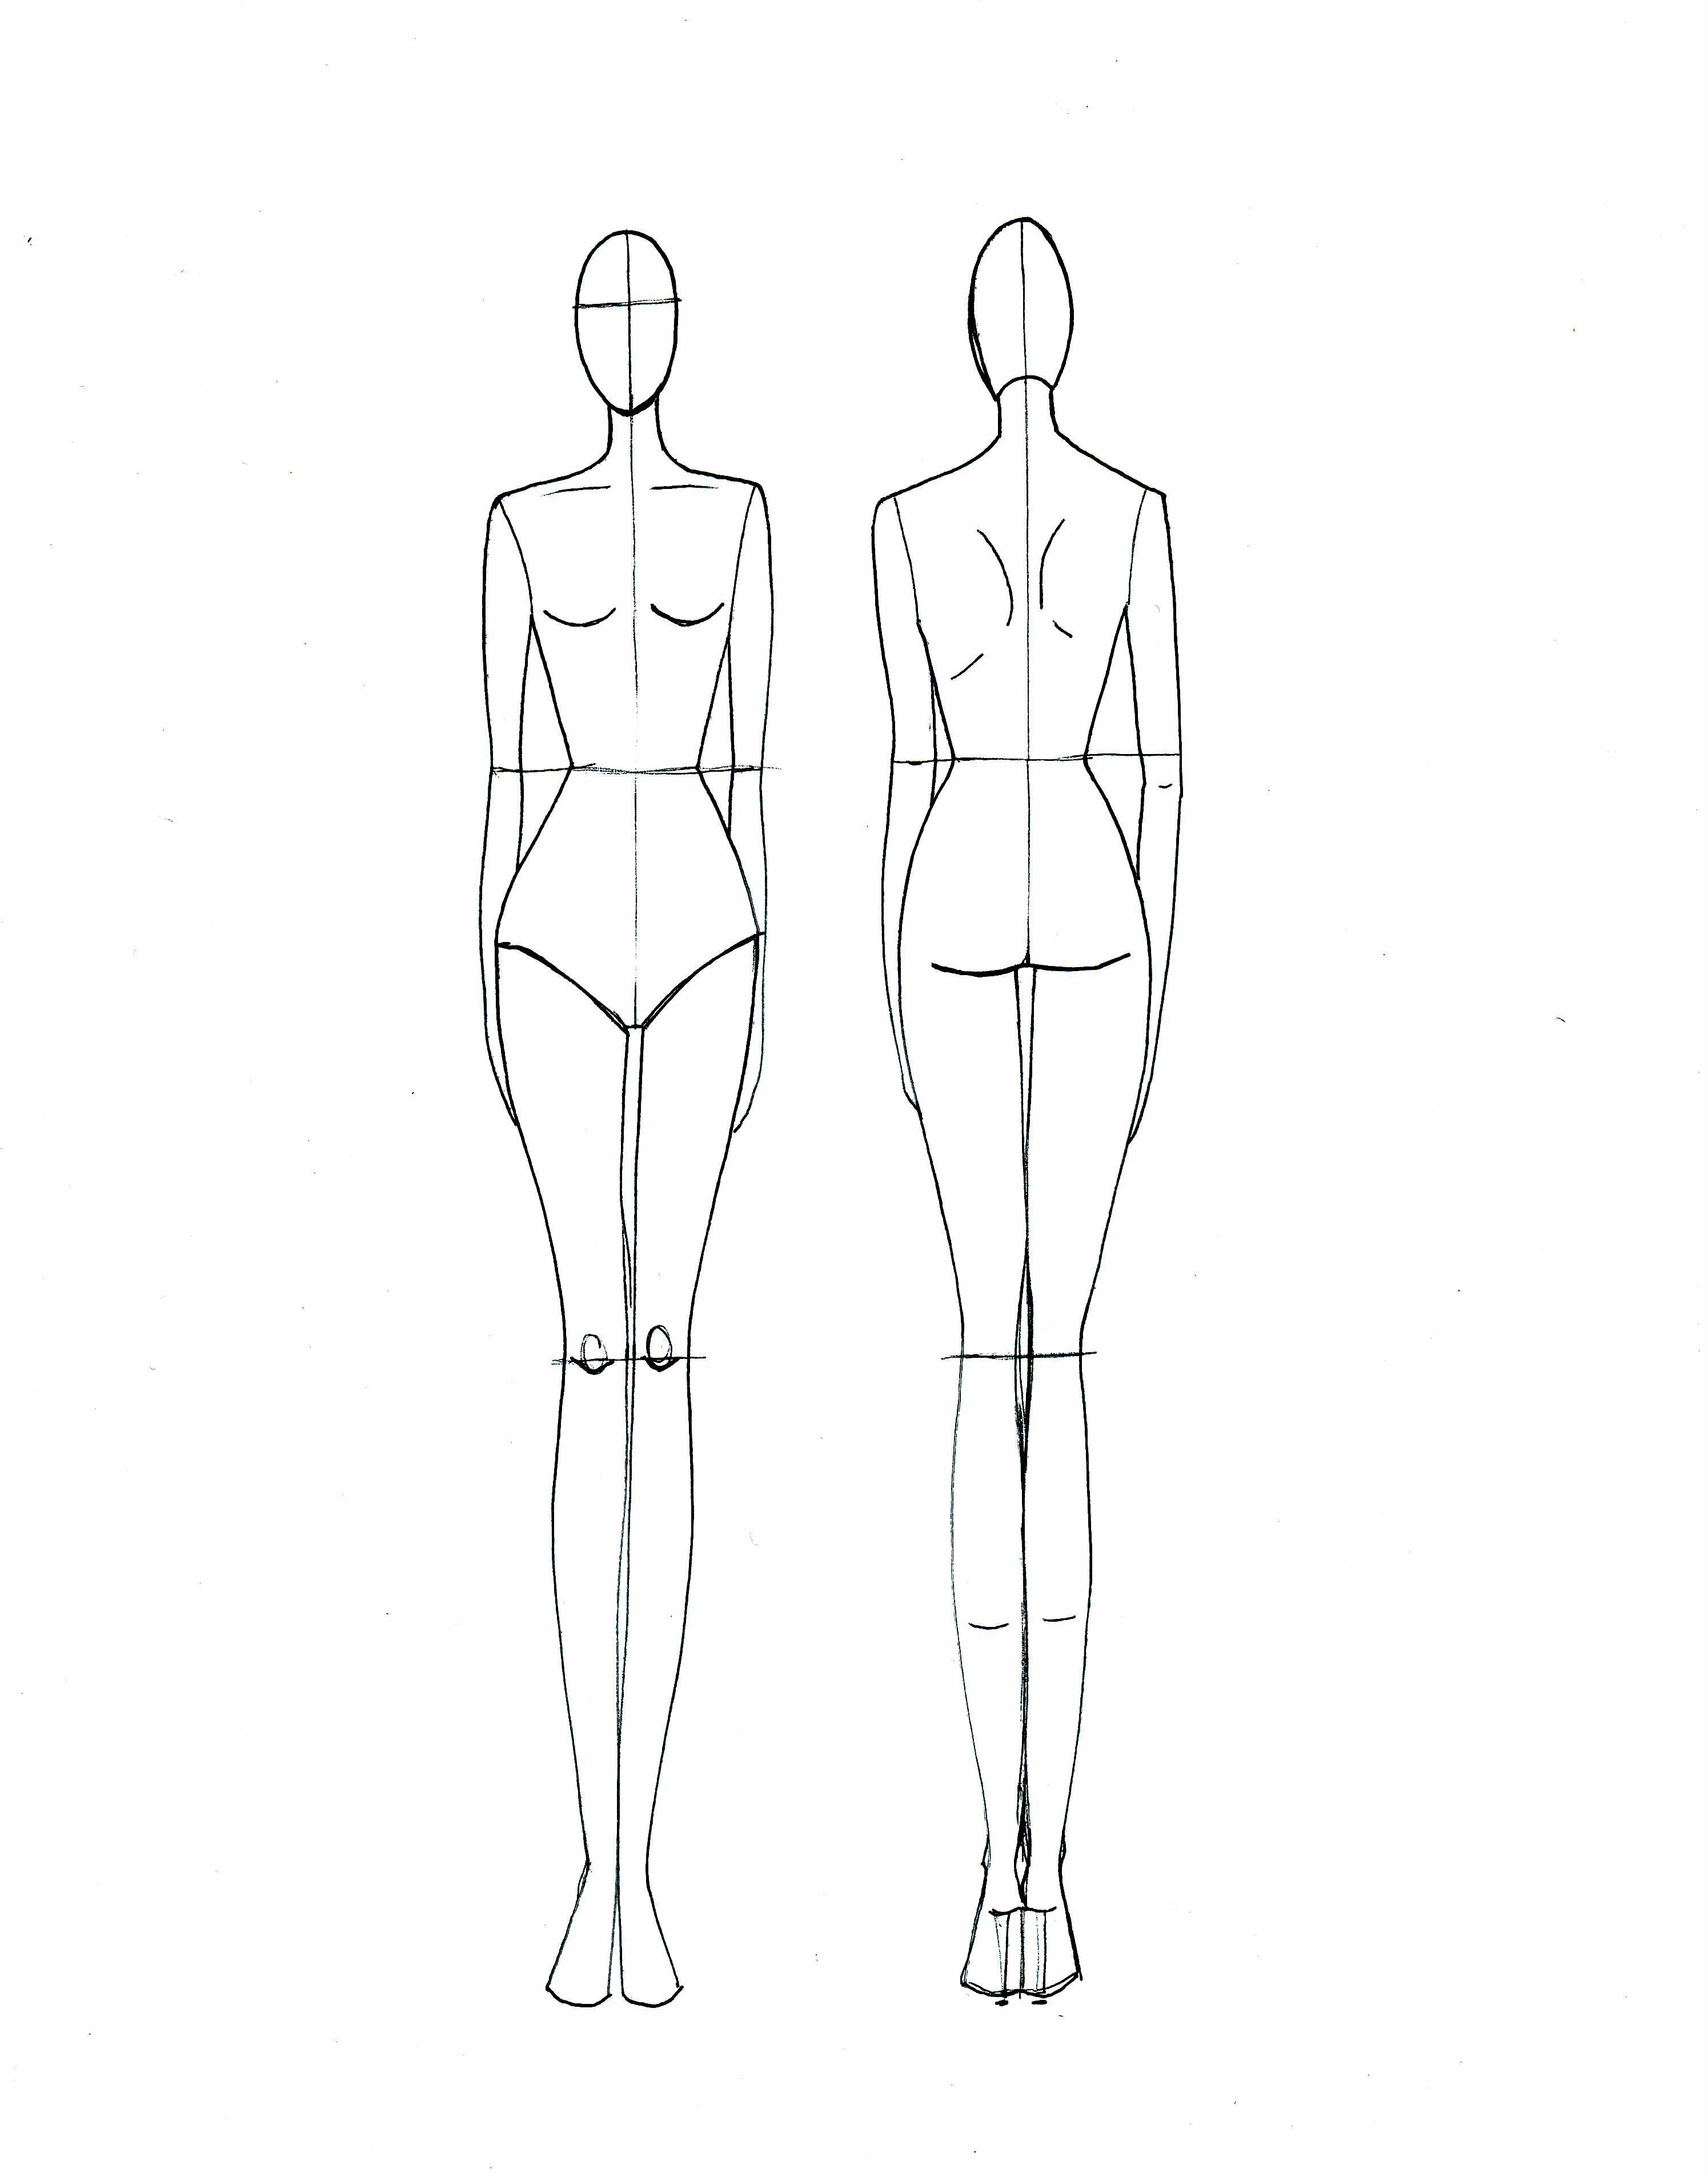 005 Frightening Body Template For Fashion Design Inspiration  Female Male HumanFull